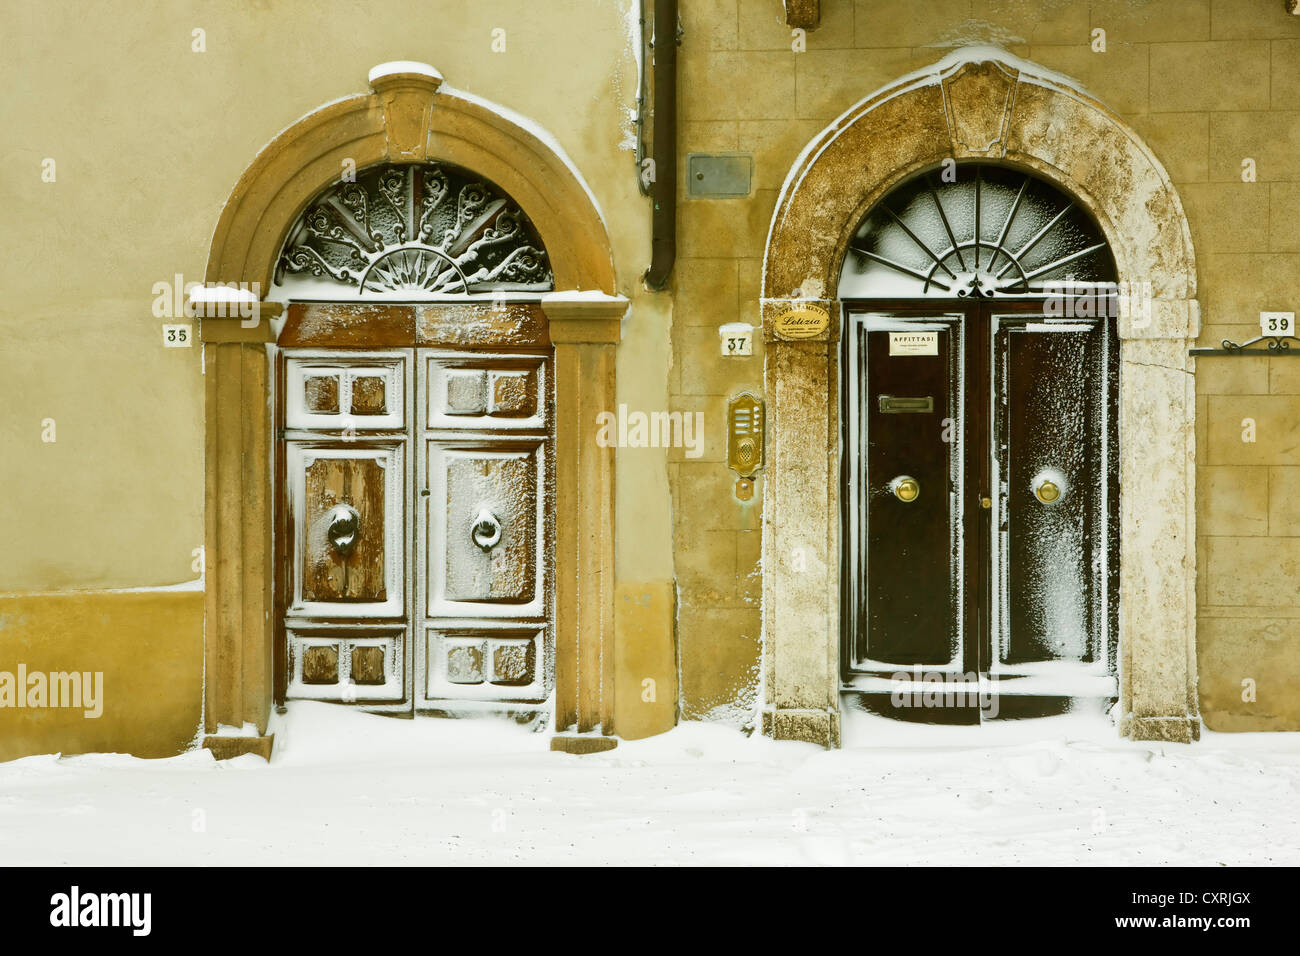 Snow-covered front doors in Pienza Tuscany Italy Europe - Stock Image & Front Exterior Entry Tuscan Stock Photos u0026 Front Exterior Entry ...